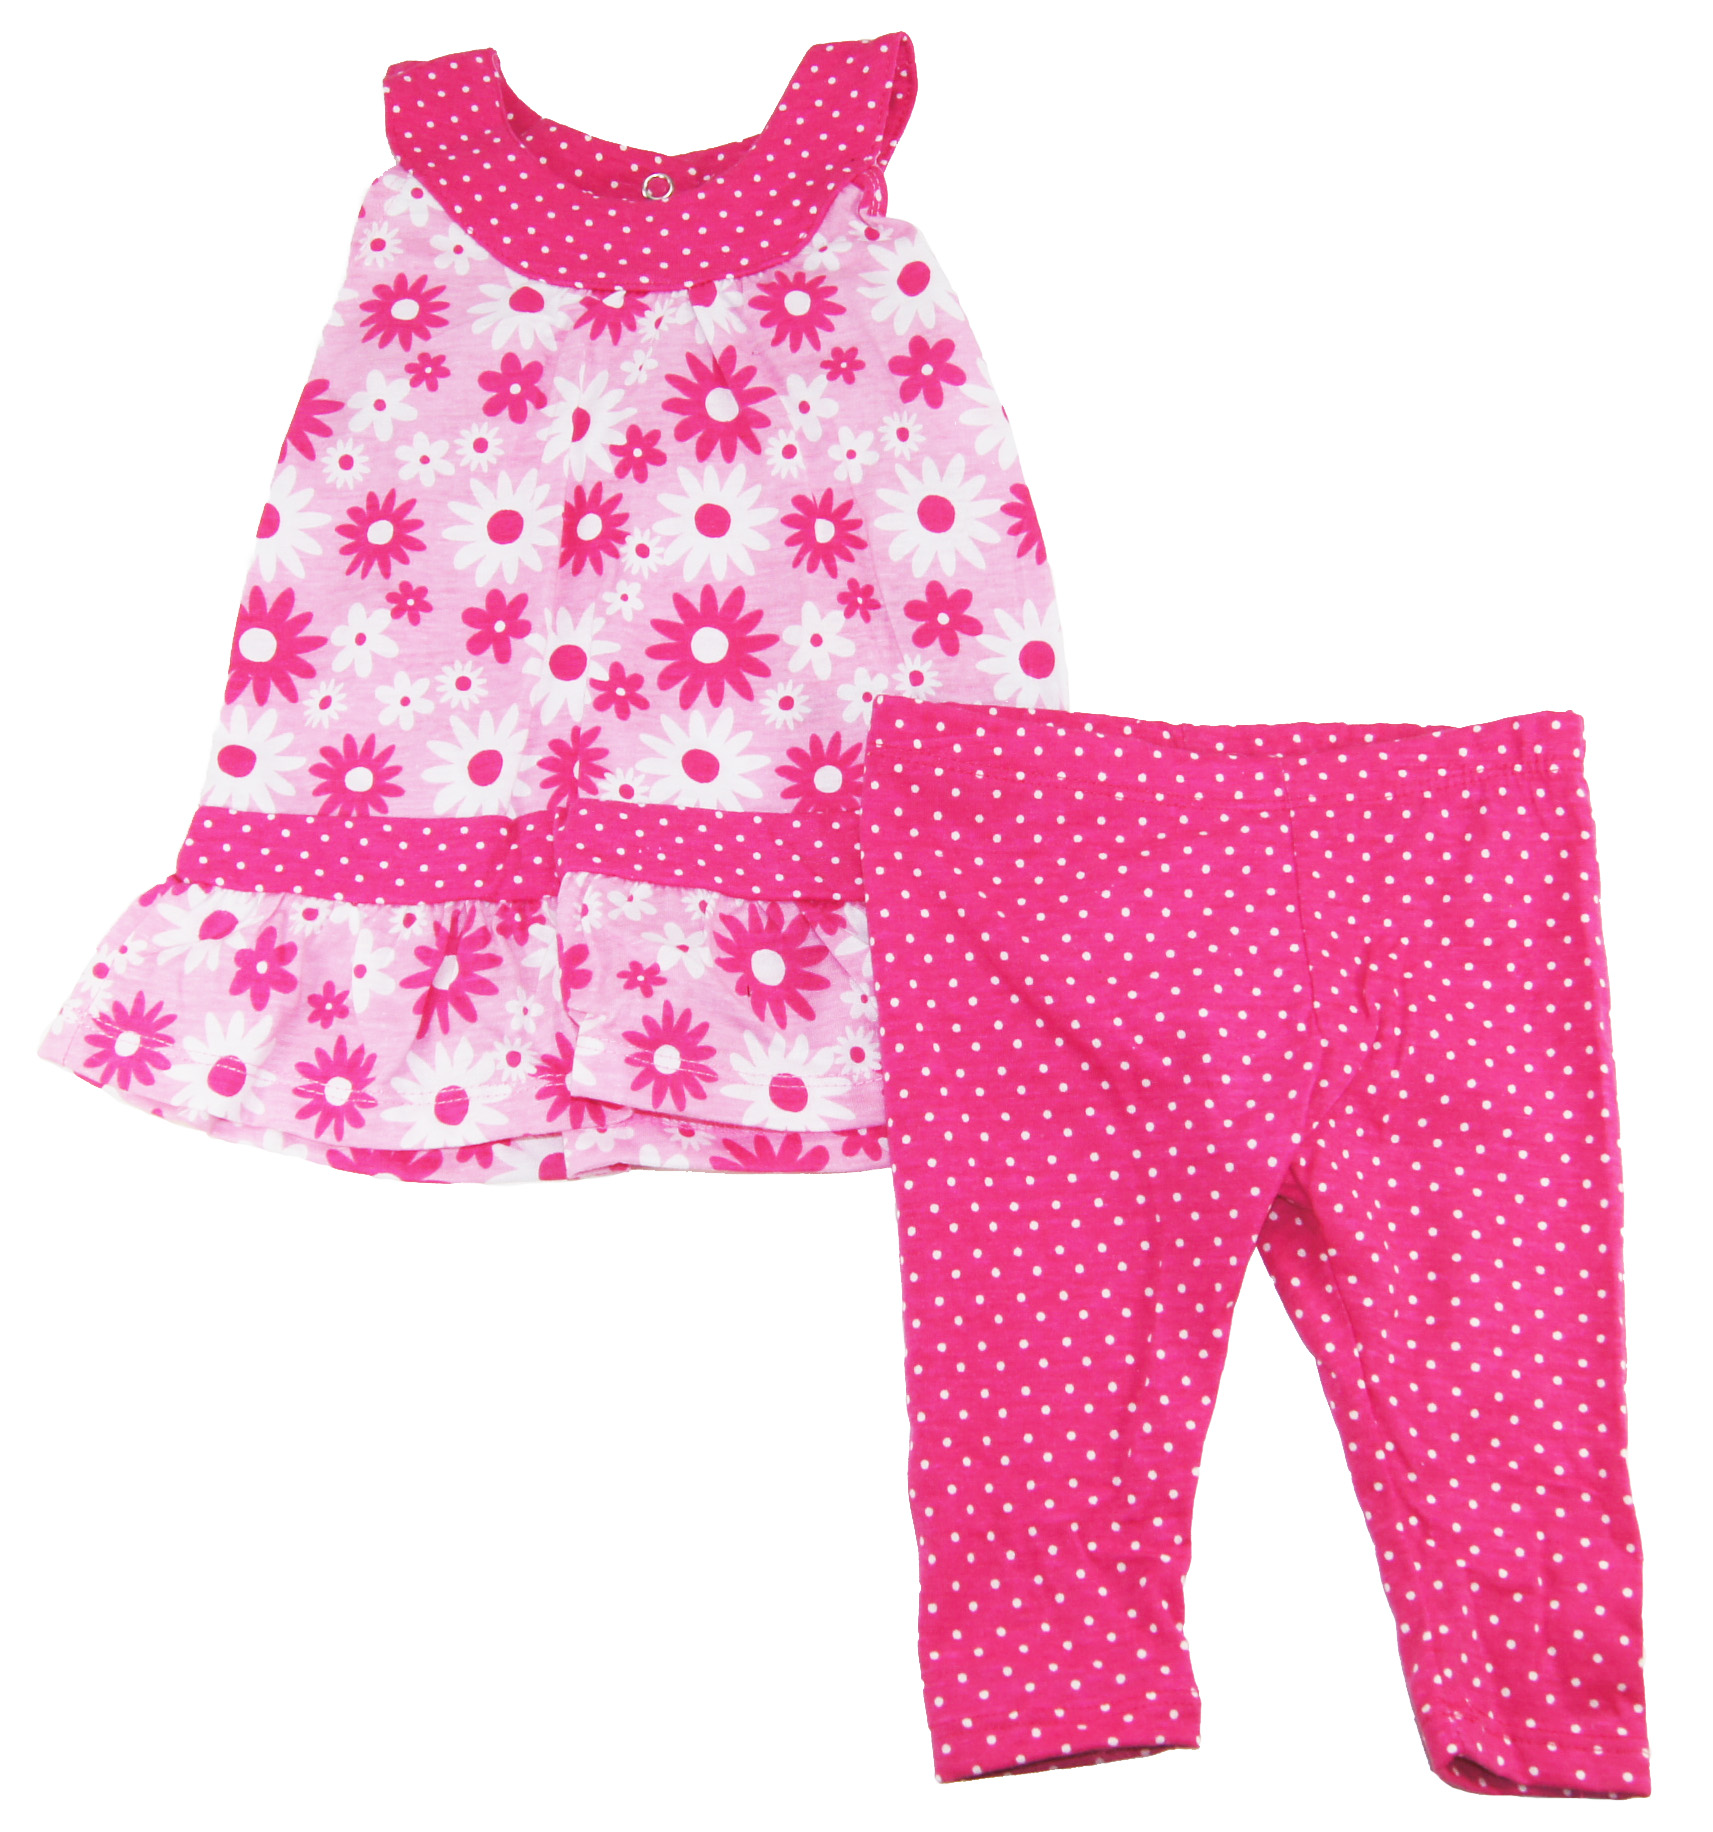 Buster Brown Baby-Girls 3-9M Pink Flowers Tunic/Dress with Leggings 2Piece Set at Sears.com